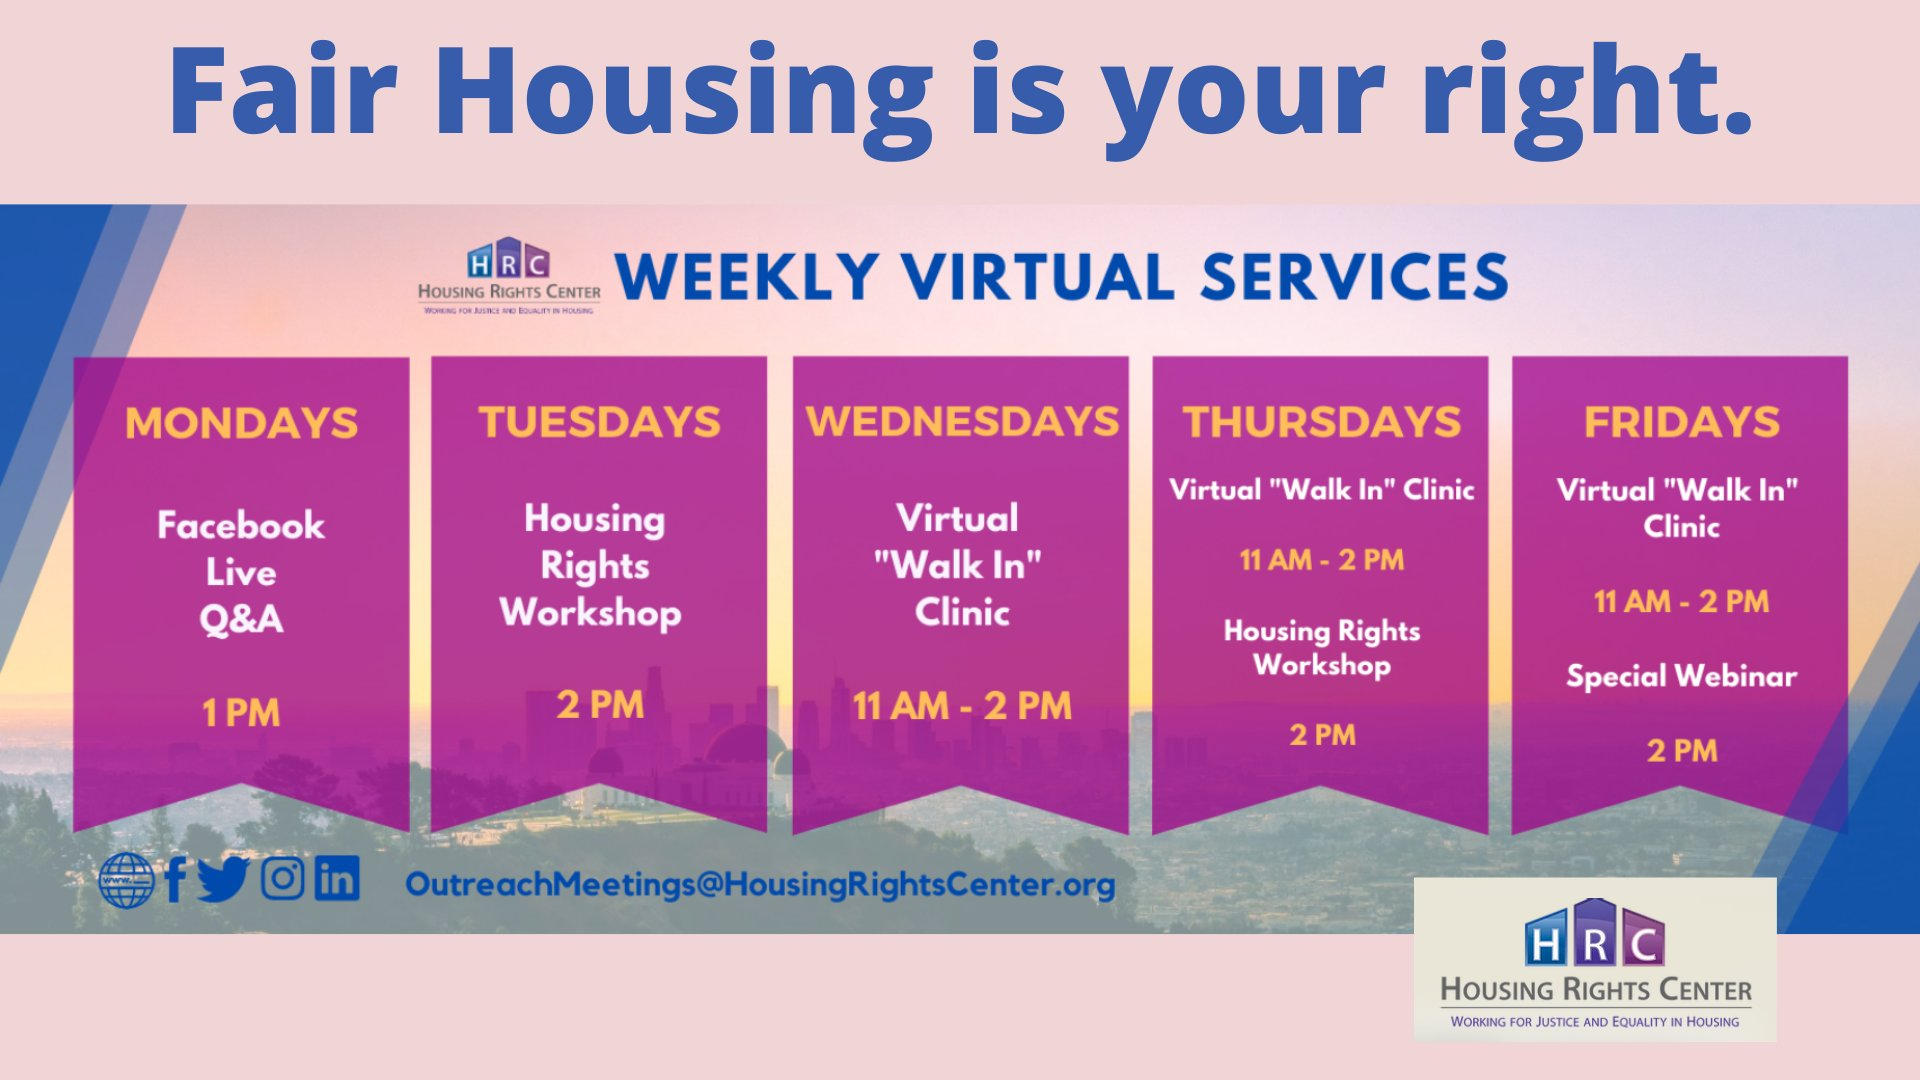 graphic showing weekly virtual services